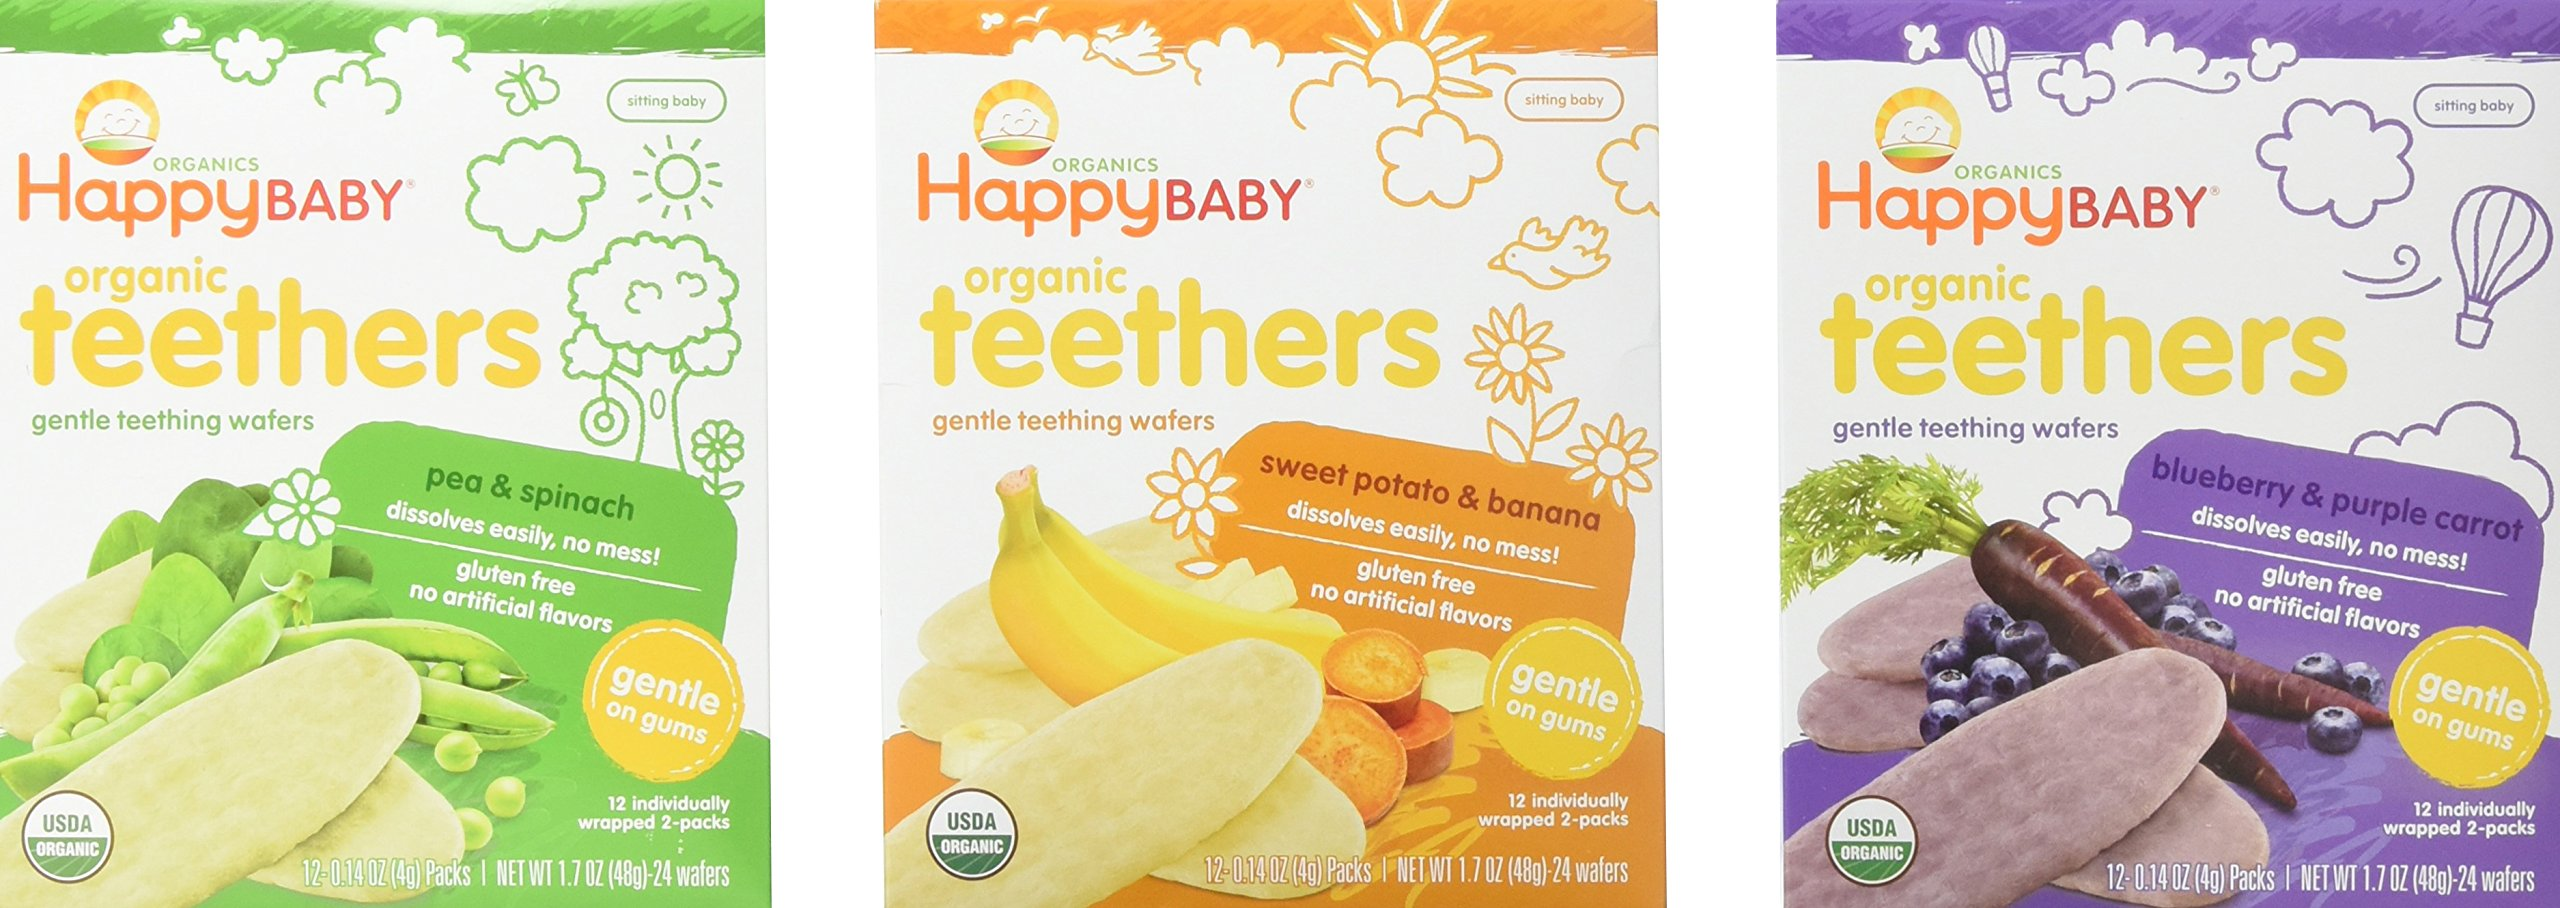 Happy Baby Organic Teethers Gentle Teething Wafers 3 Flavor Sampler Bundle: (1) Pea & Spinach Teething Wafers, (1) Sweet Potato & Banana Wafers, and (1) Blueberry & Purple Carrot Wafers, 1.7 Oz. Ea. by Happy Baby